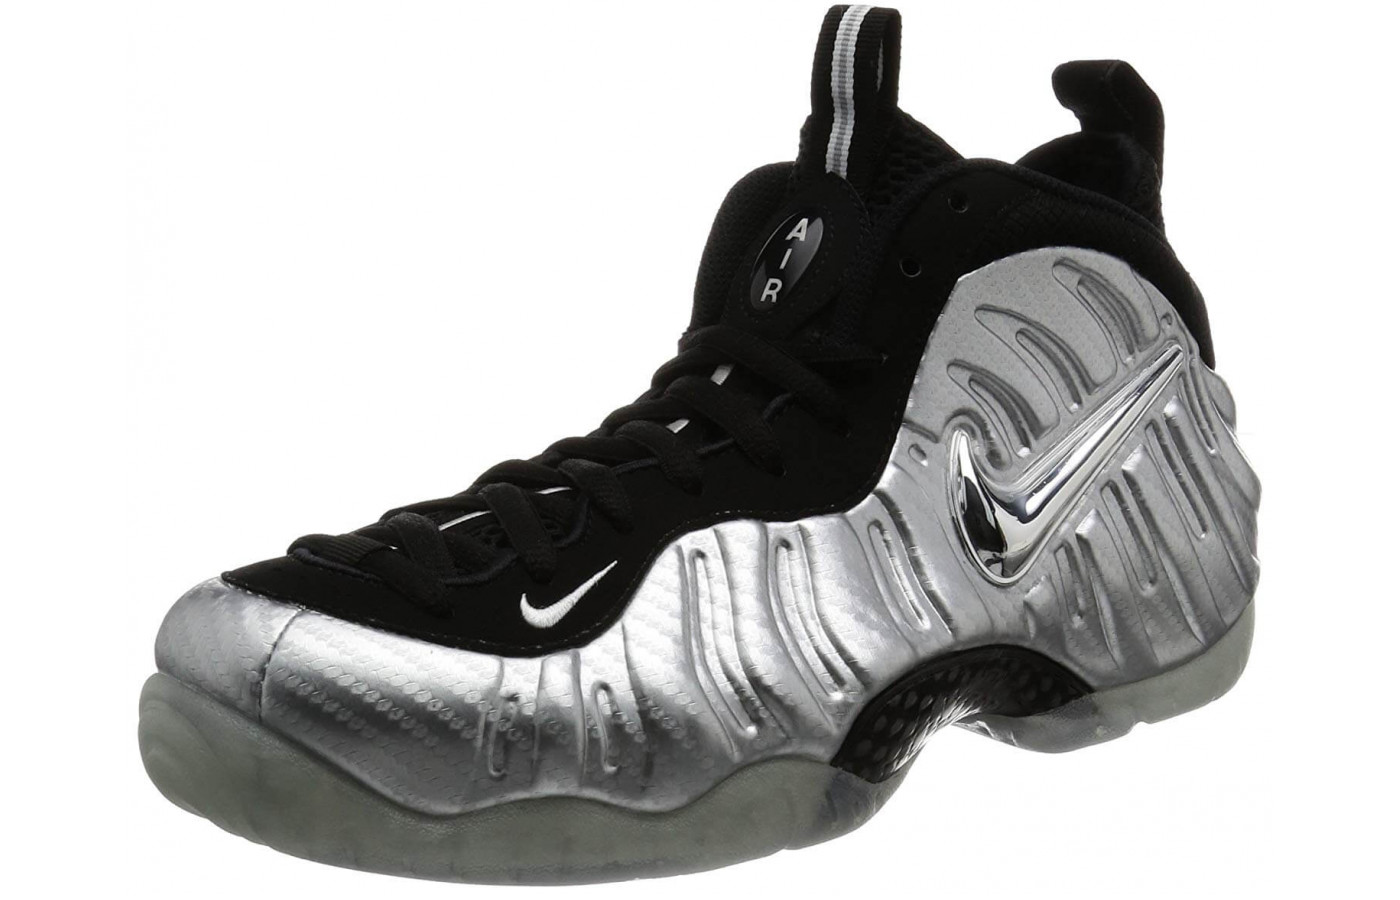 Nike Air Foamposite Pro Review To buy or not in 2020